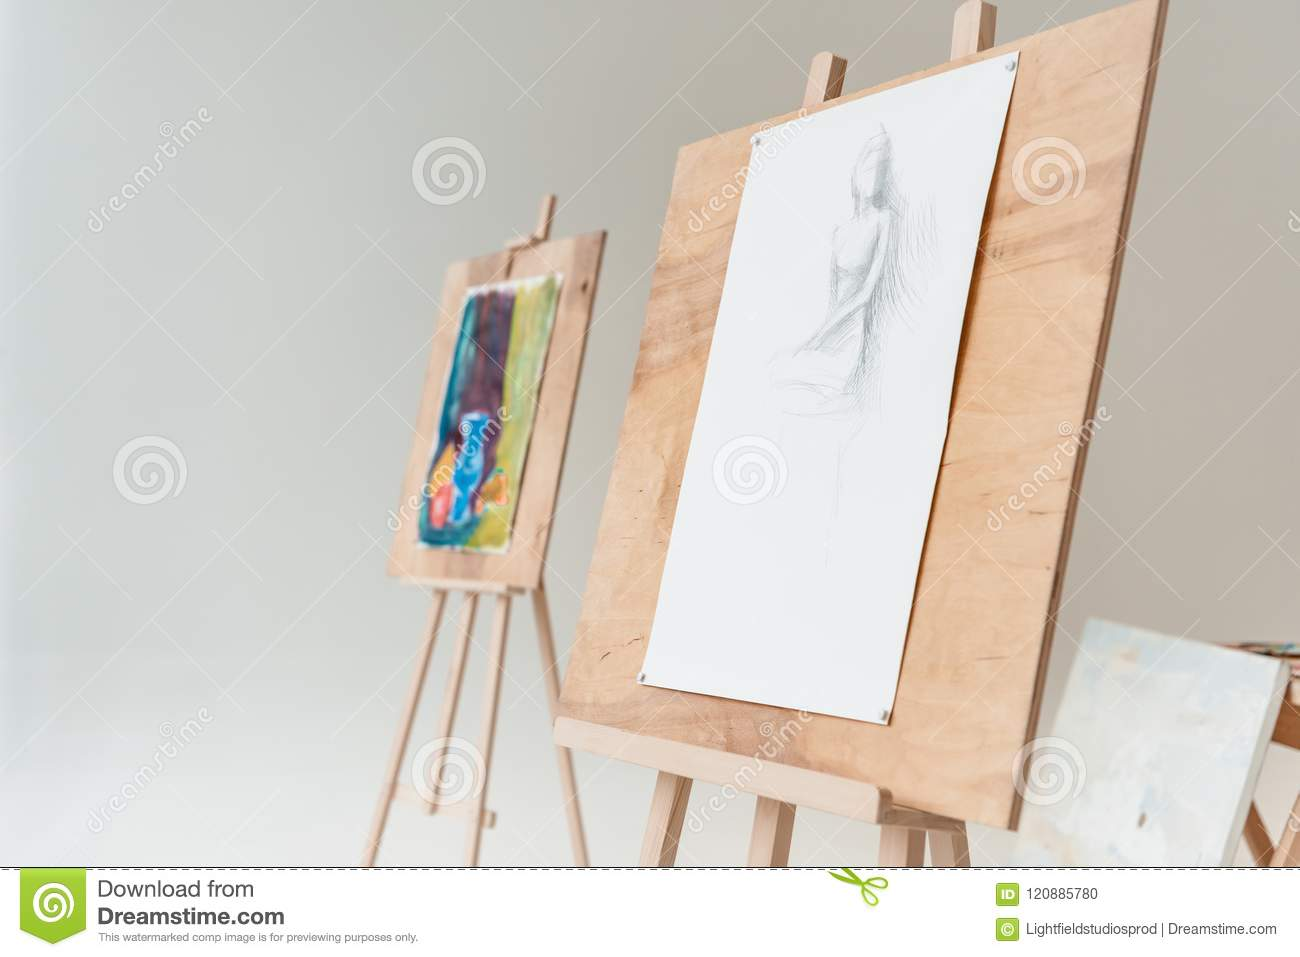 Easels With Artistic Paintings In Empty Art Studio Stock